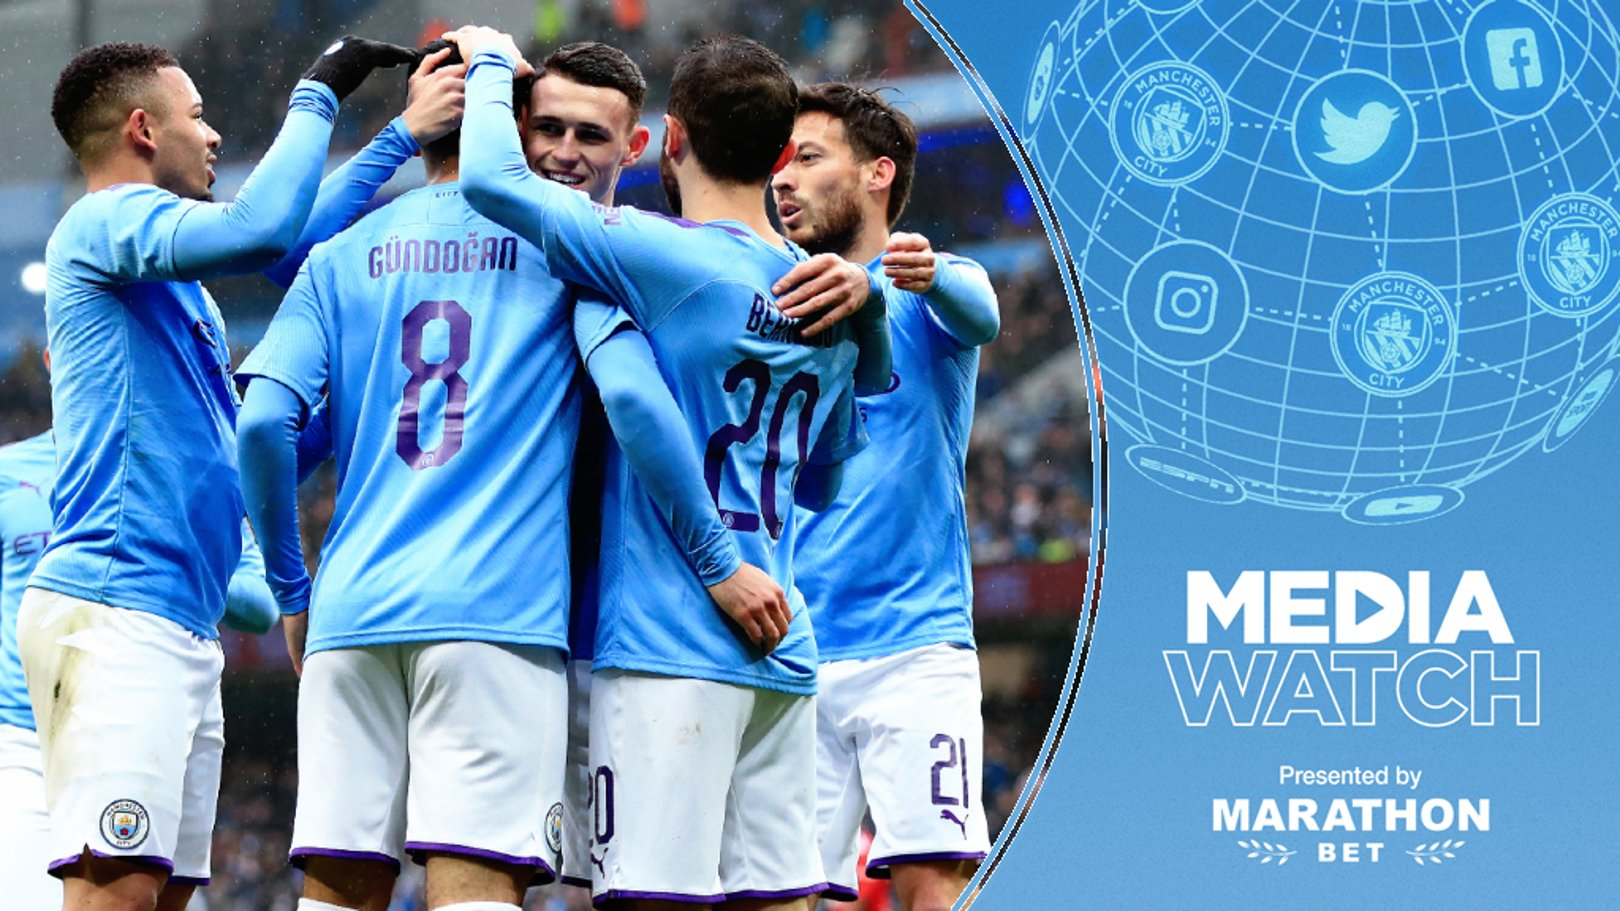 Media Watch: 'Phenomenal' City have special midfield